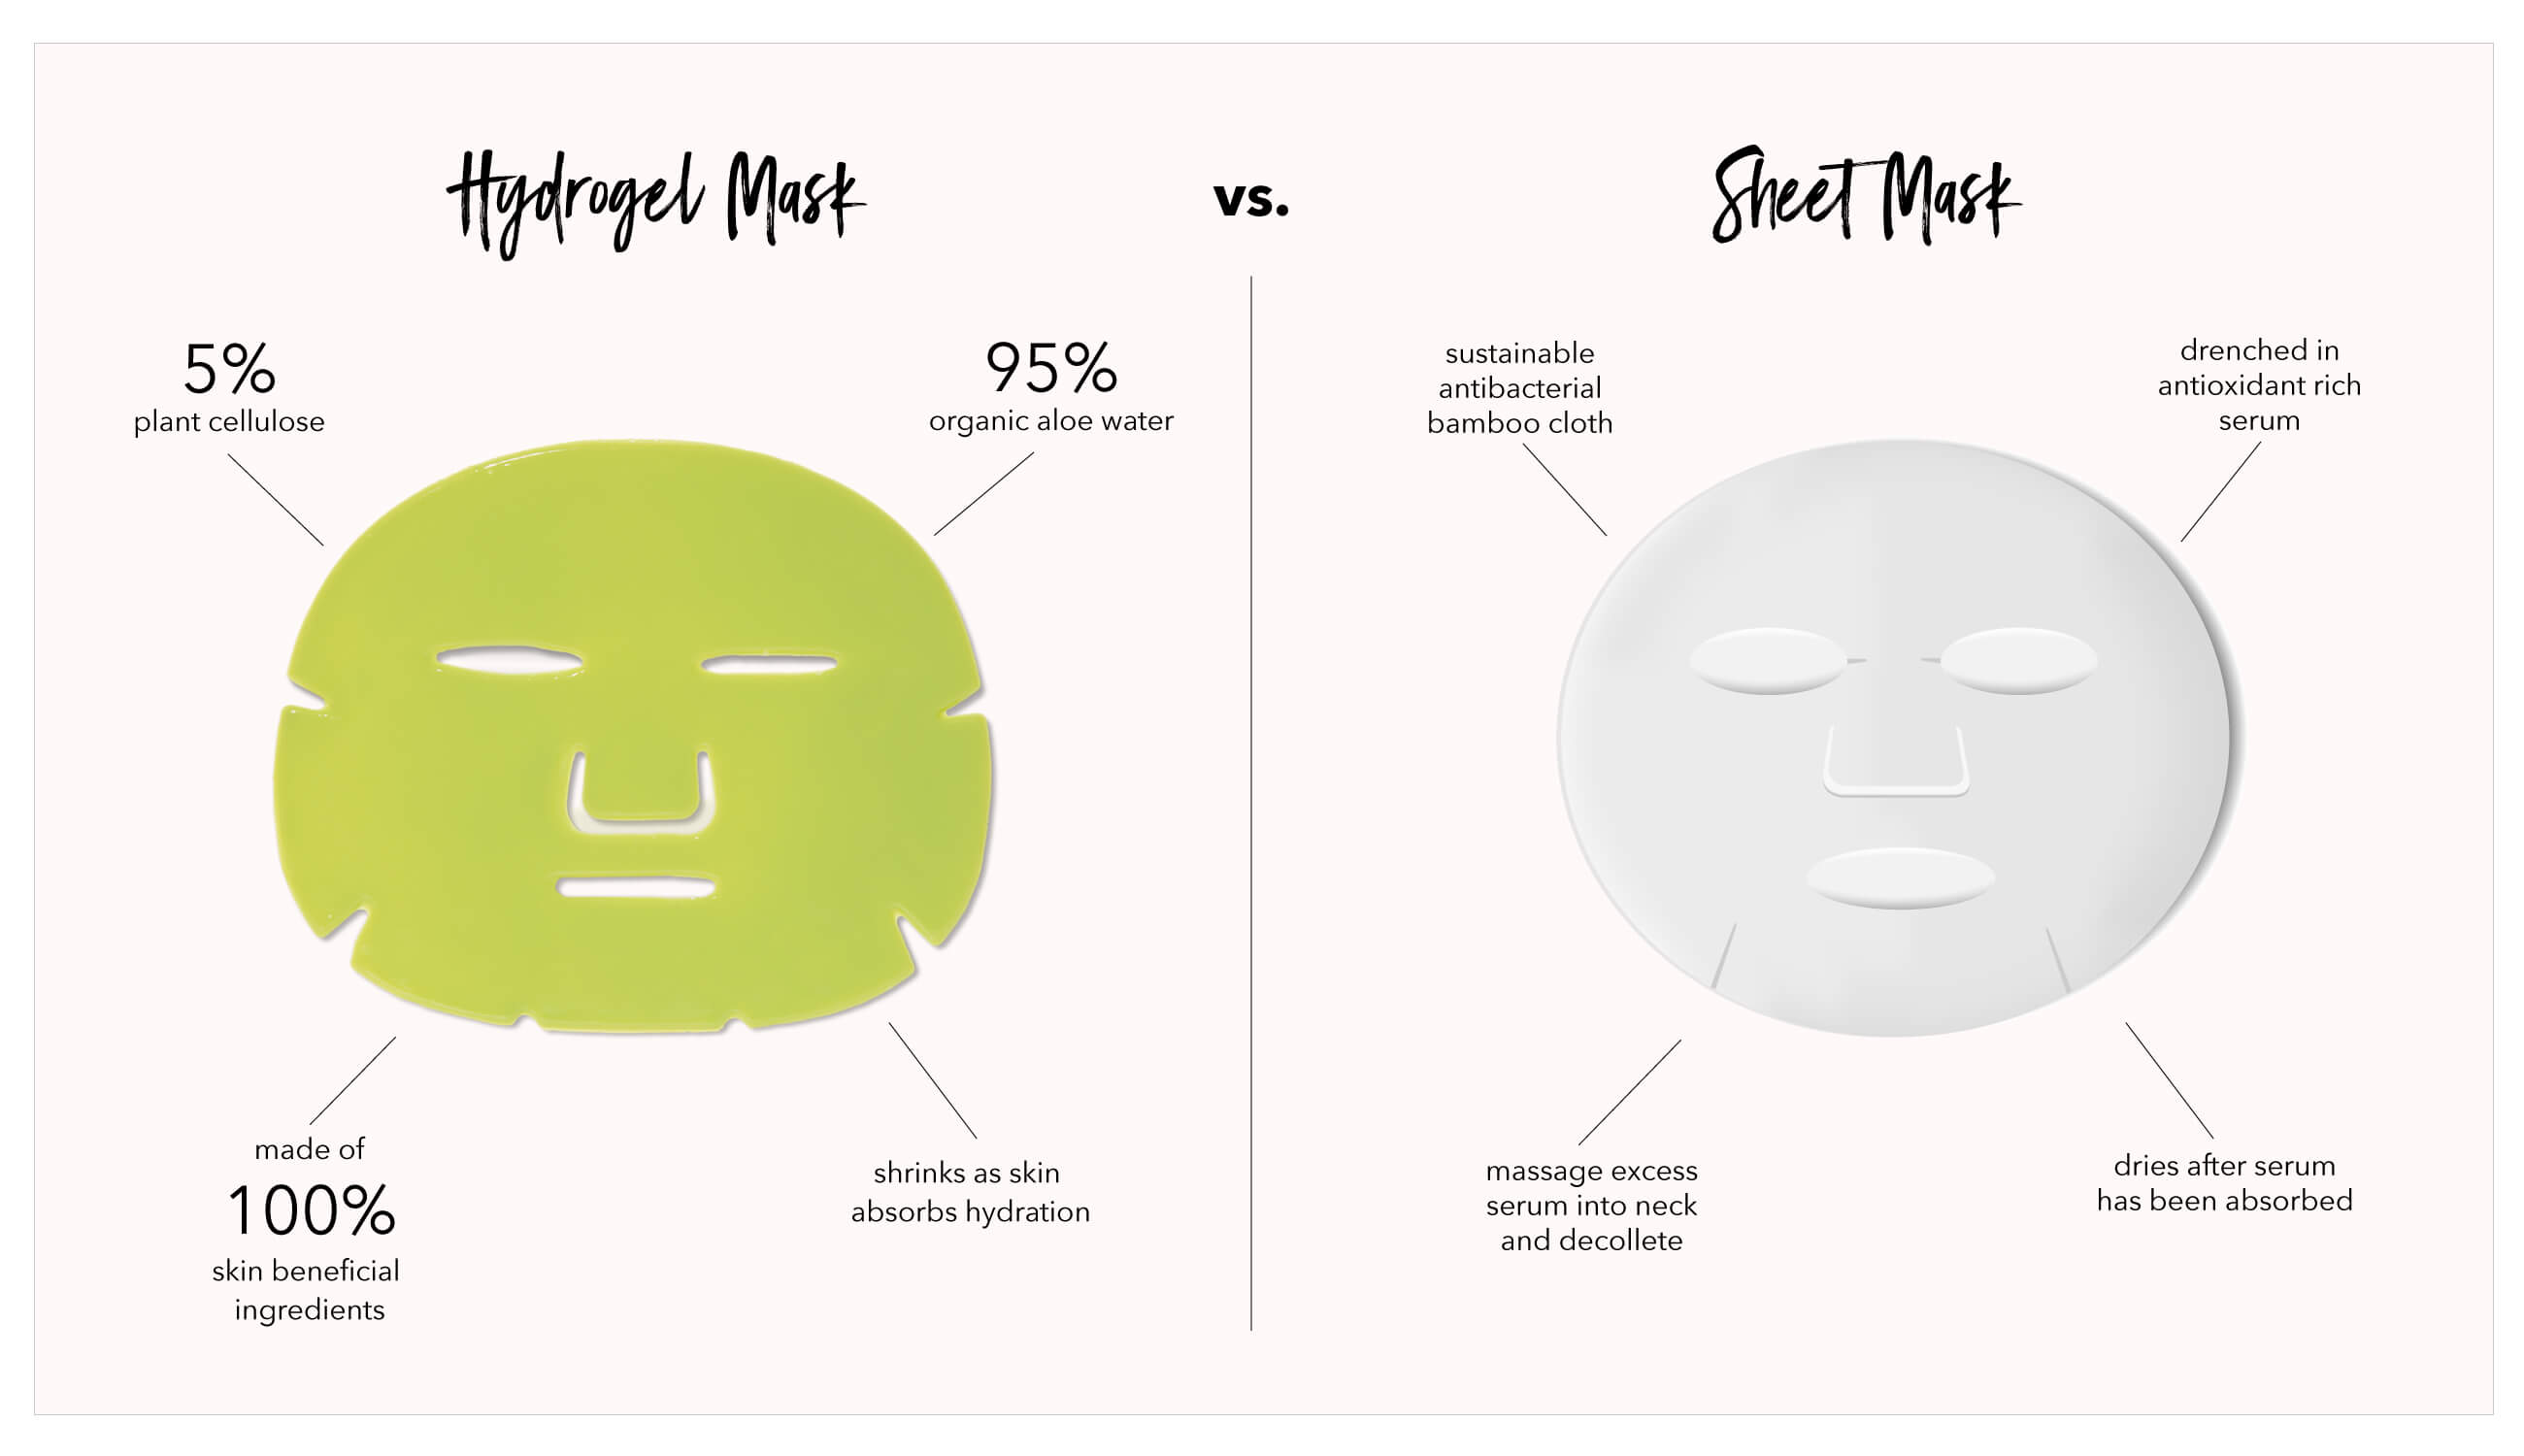 sheet mask vs. hydrogel mask